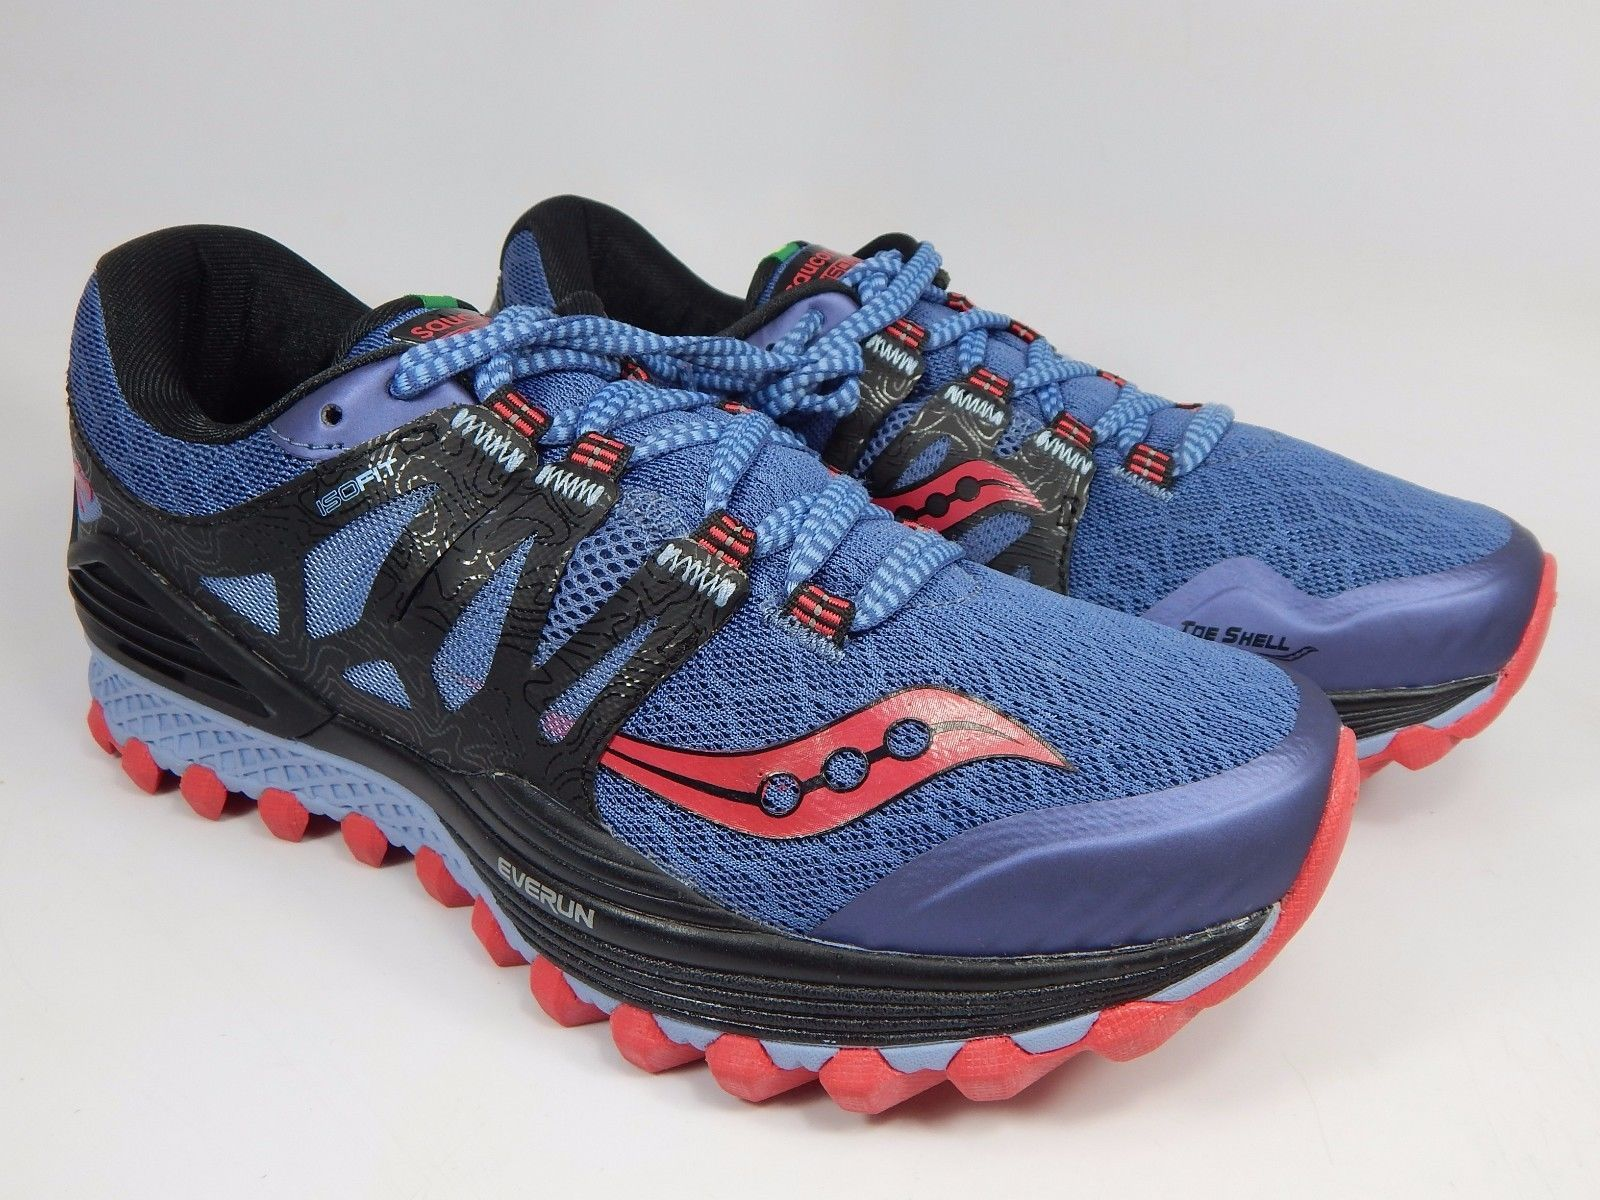 Saucony Xodus ISO Women's Trail Running Shoes Size US 8 M (B) EU 39 S10325-2